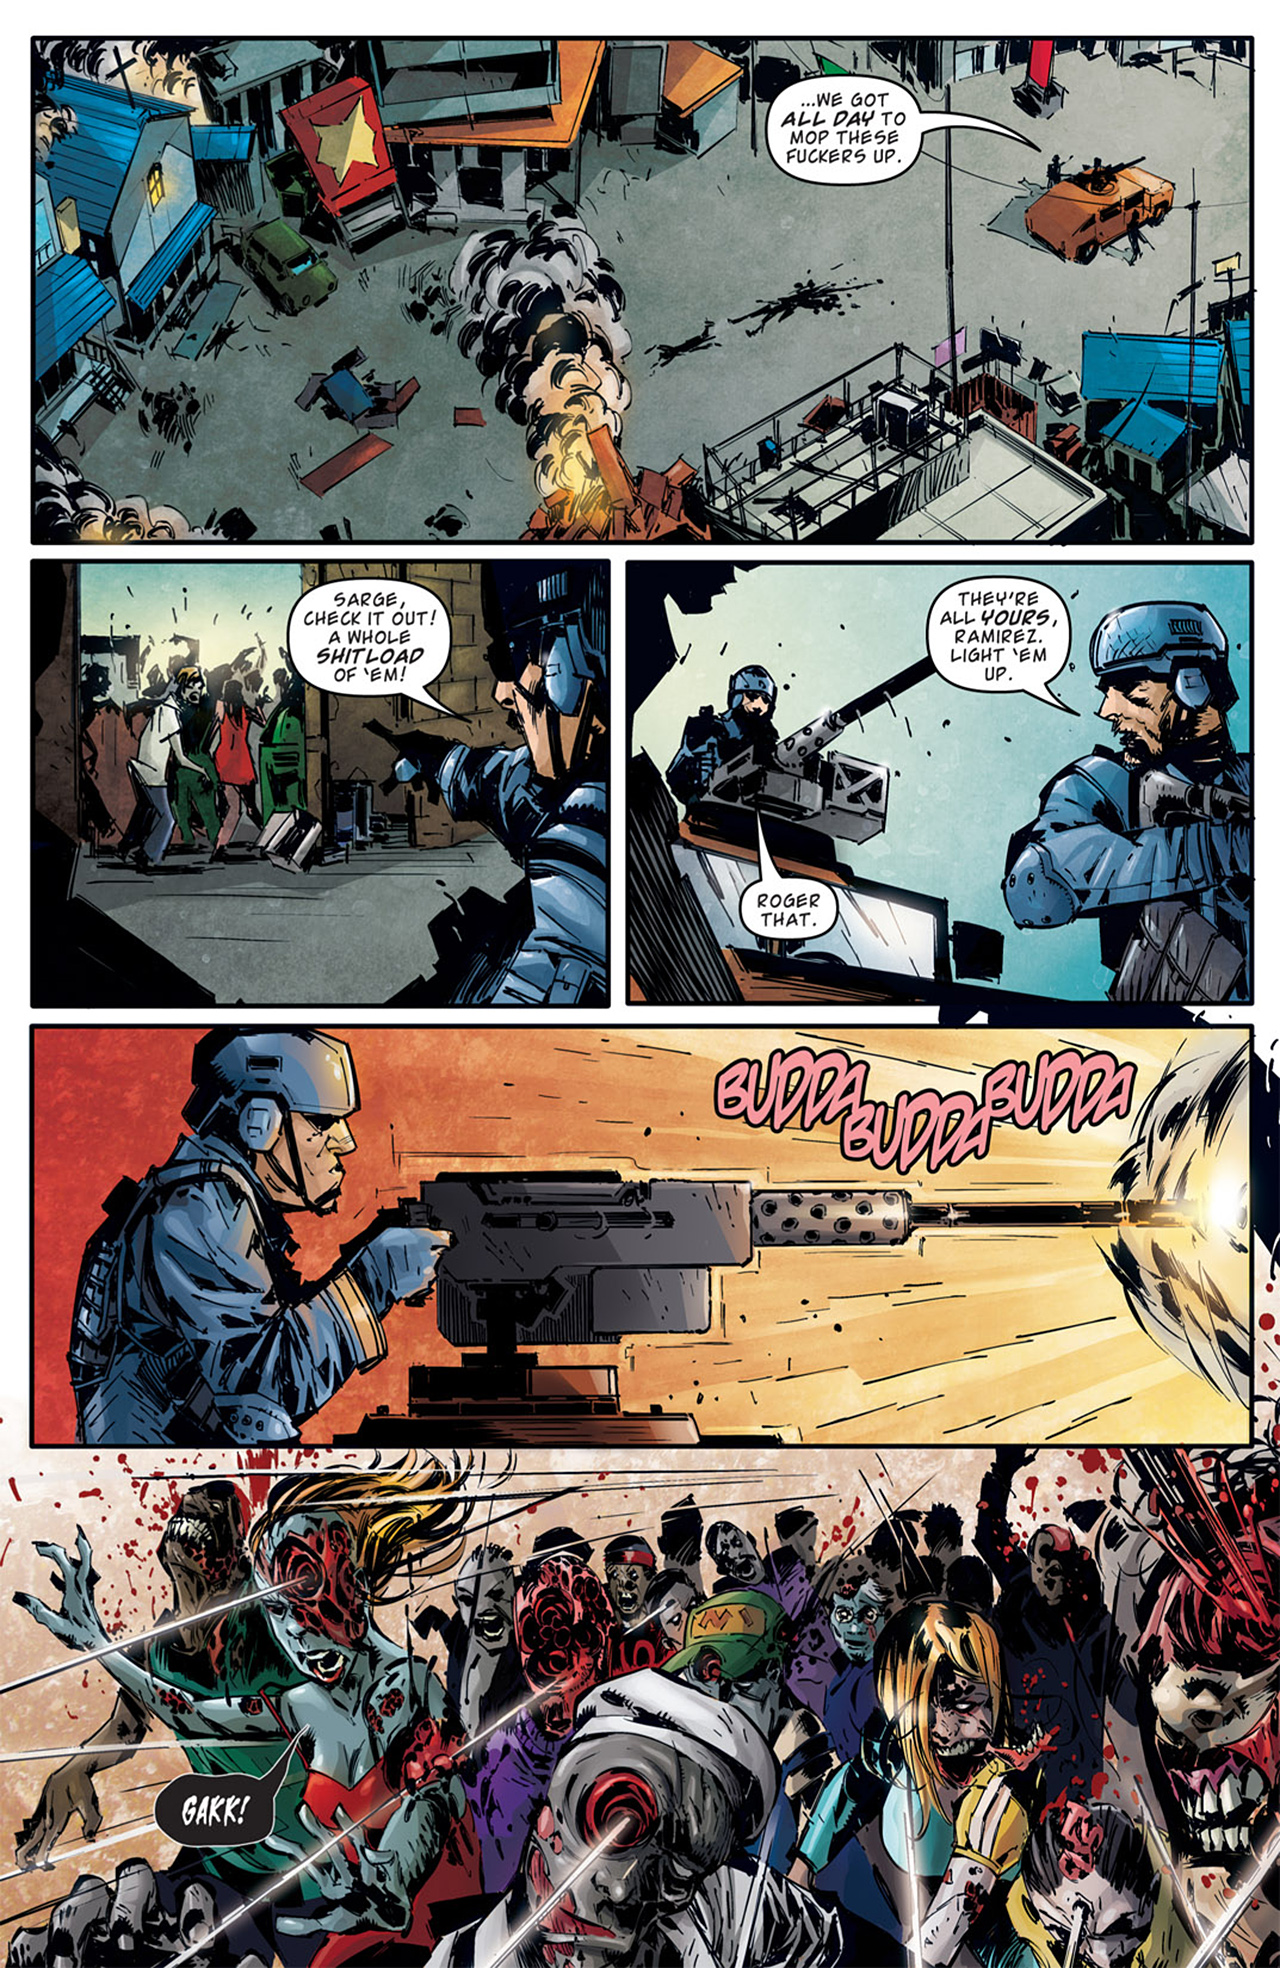 Read online Dead Rising: Road to Fortune comic -  Issue # TPB - 32